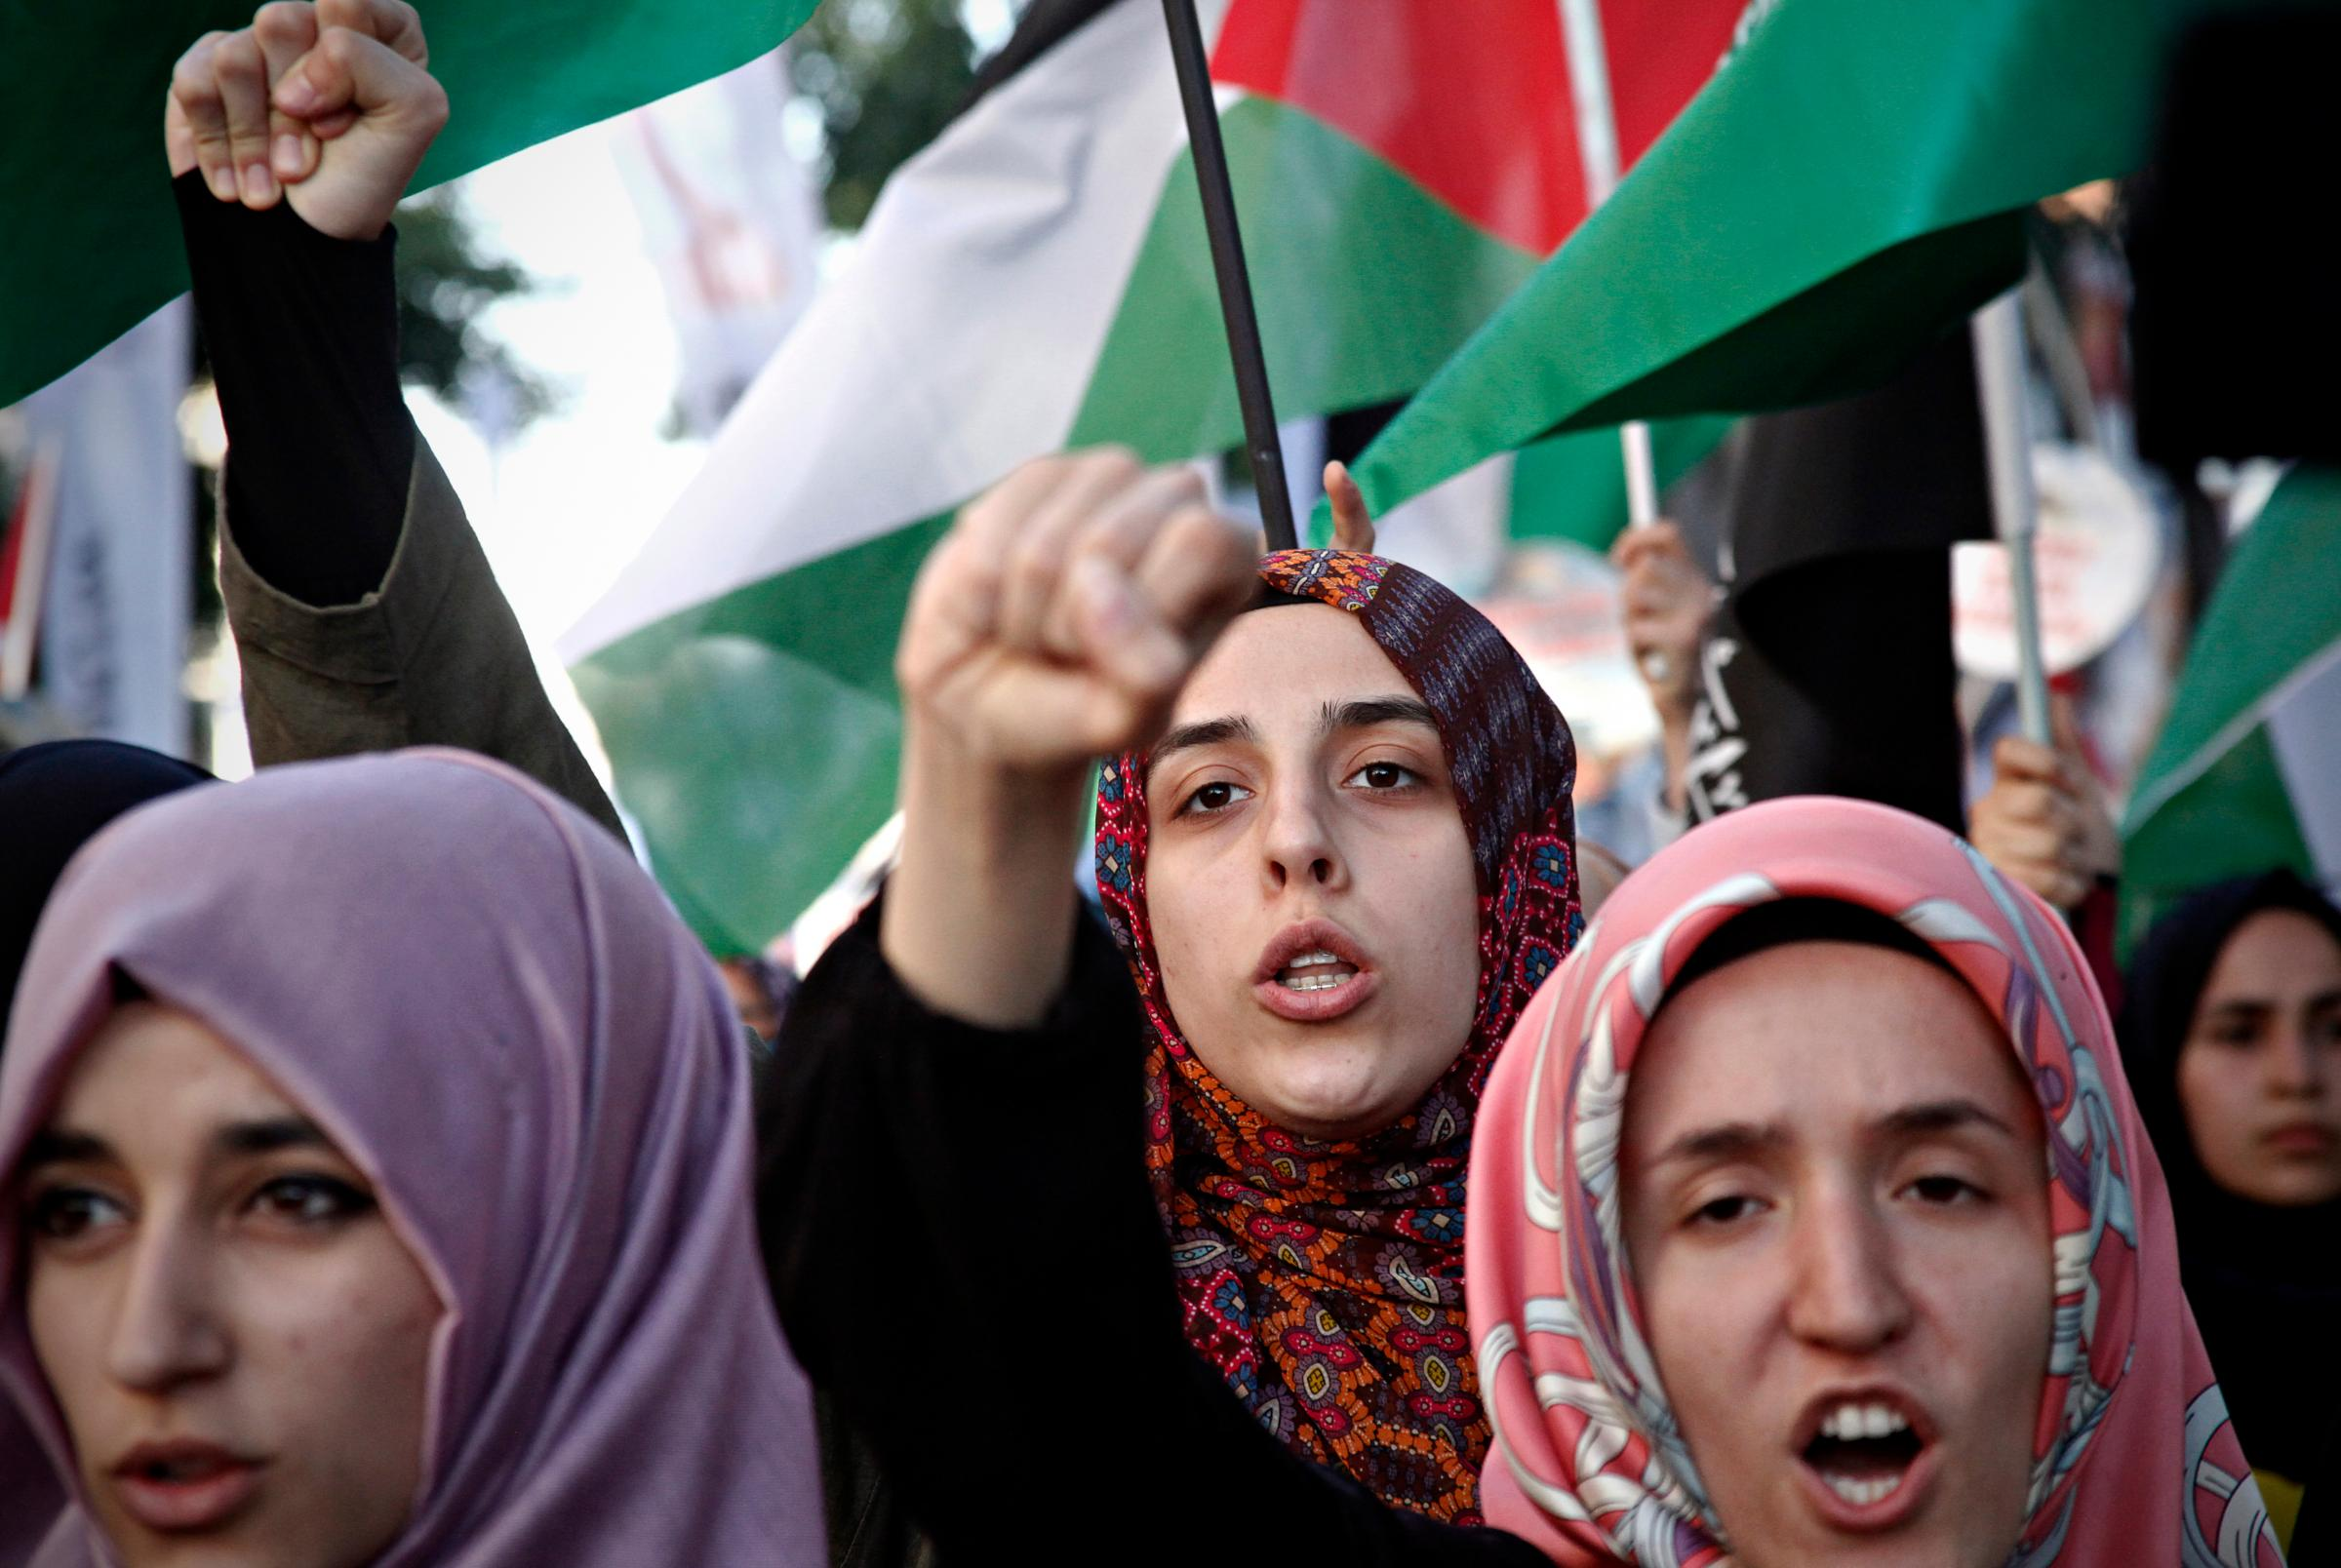 A group of women wearing hijabs gather in protest, holding up solidarity fists and standing in front of Palestinian flags